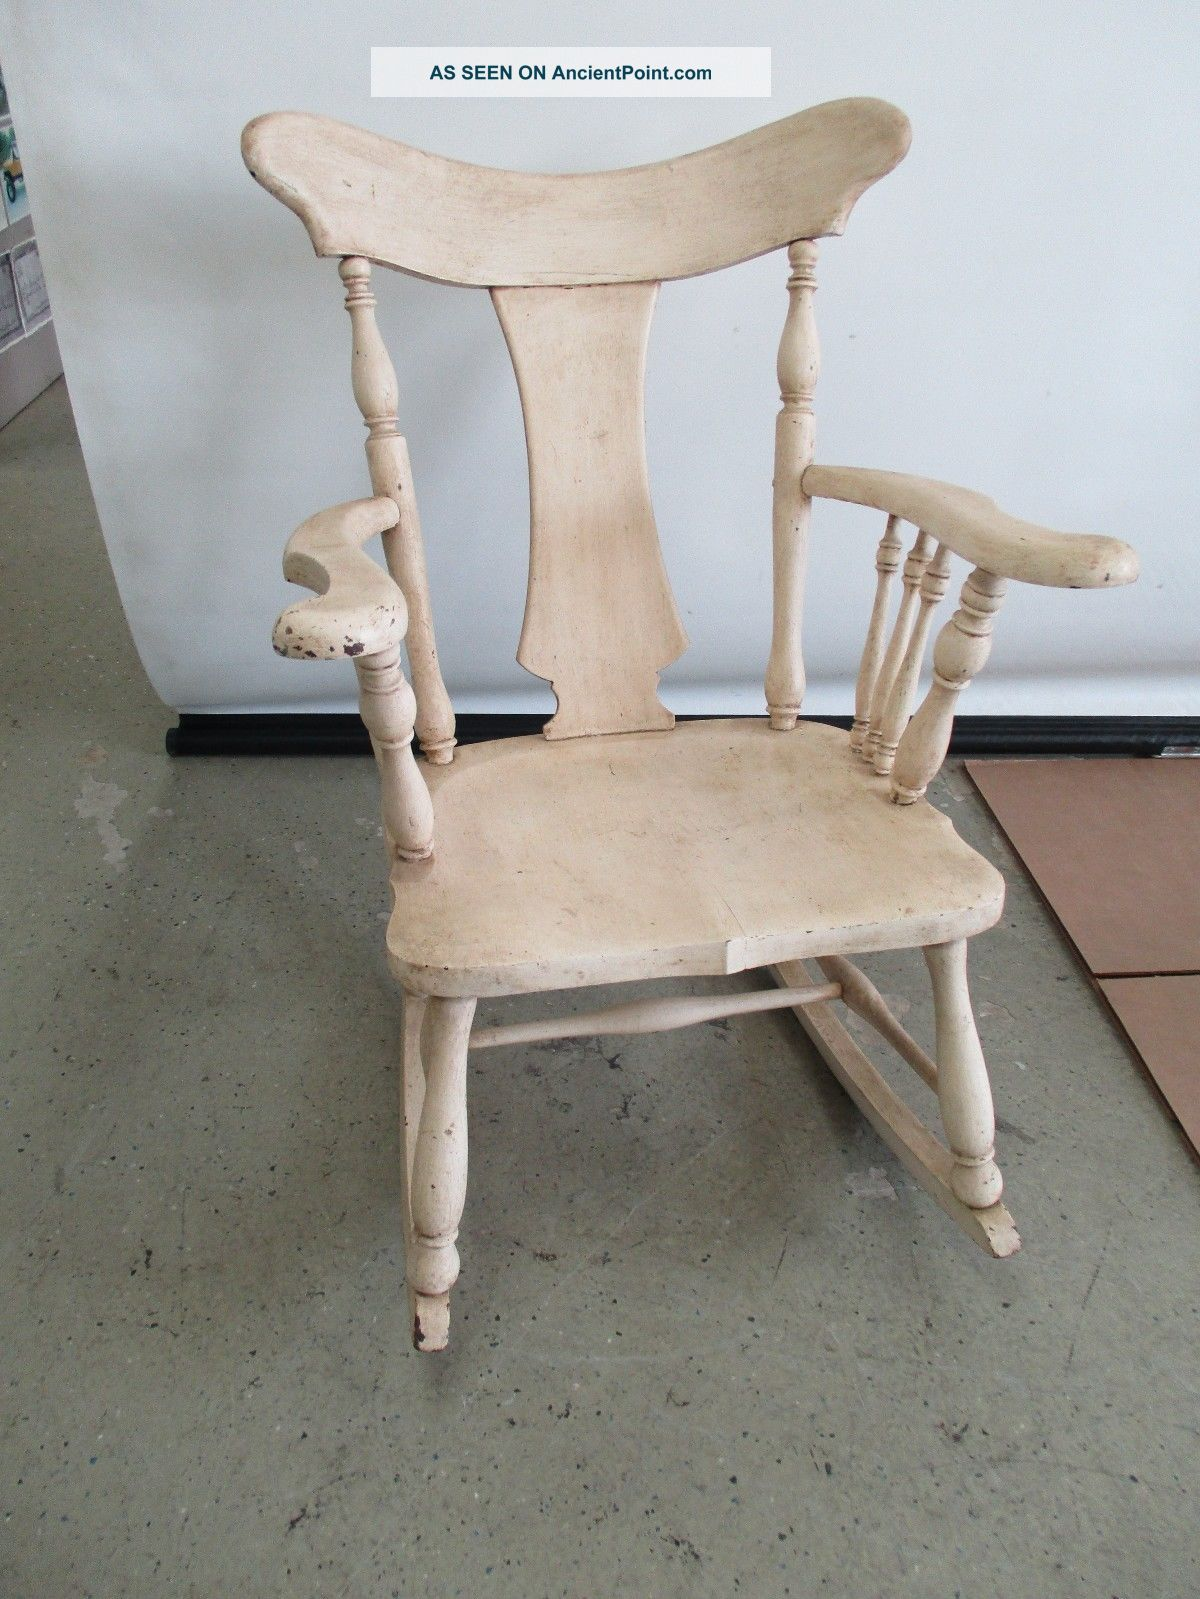 Antique solid wood rocking chair white washed finish rocking chair